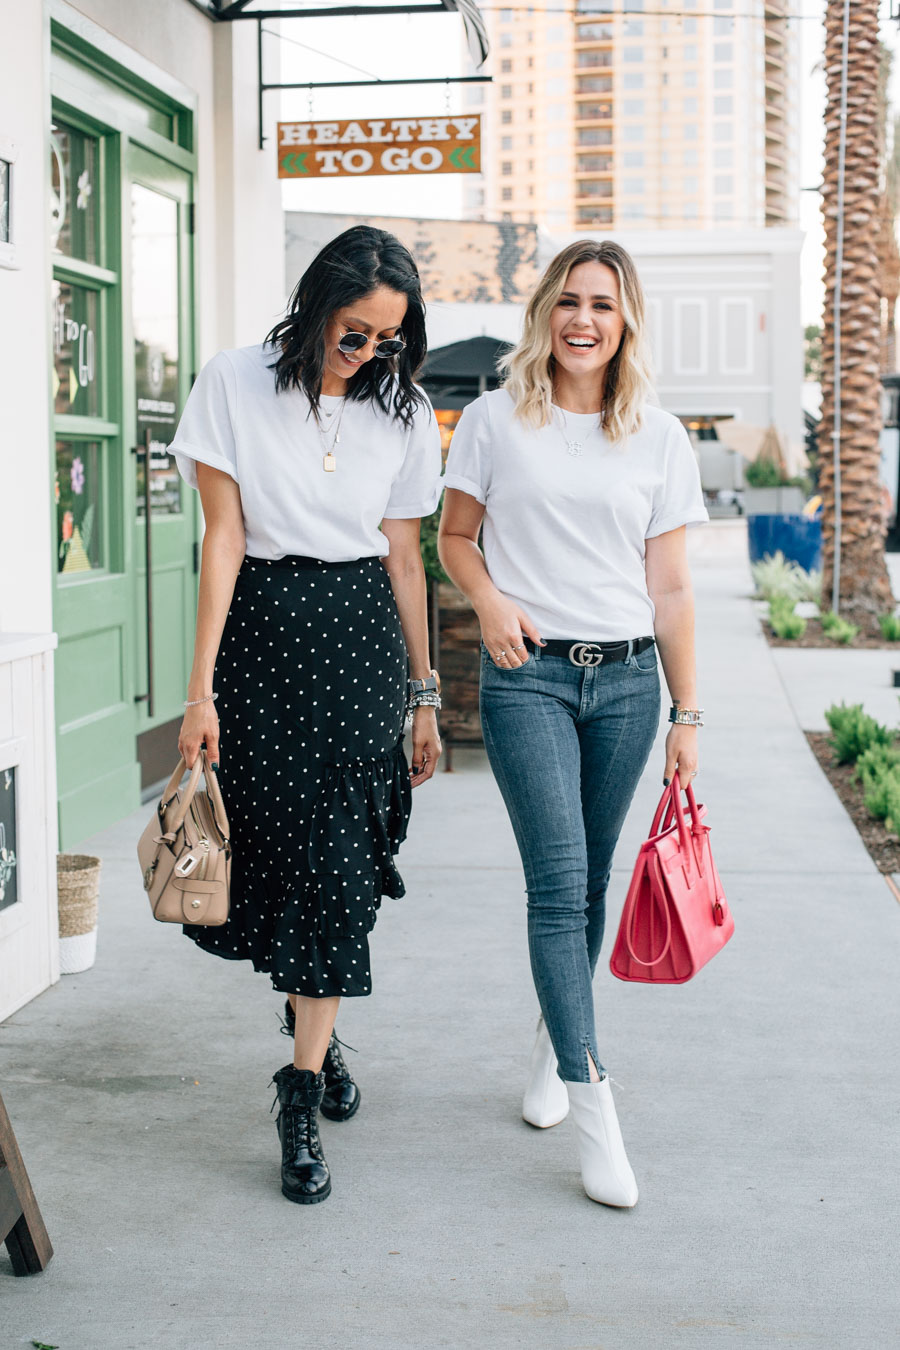 Lilly Beltran in a polka dot skirt and white tee shirt